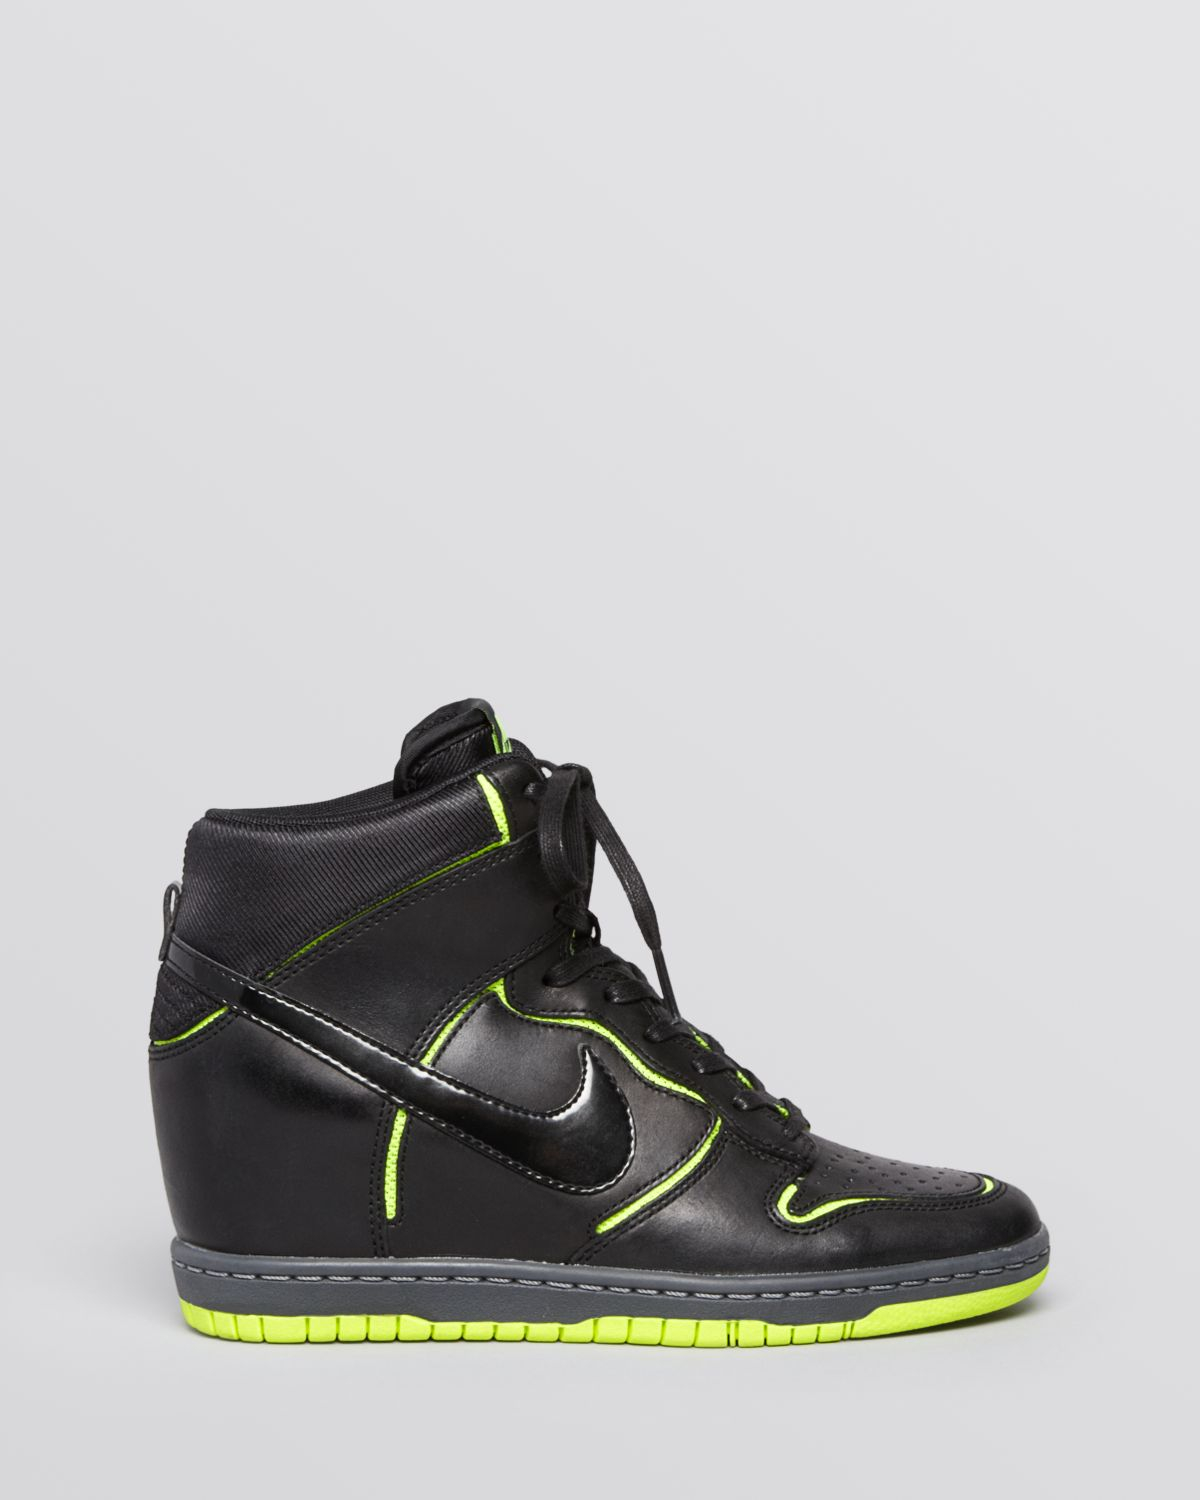 the best attitude f4483 c2c9d ... buy gallery. previously sold at bloomingdales womens wedge sneakers  womens nike dunk womens nike dunk